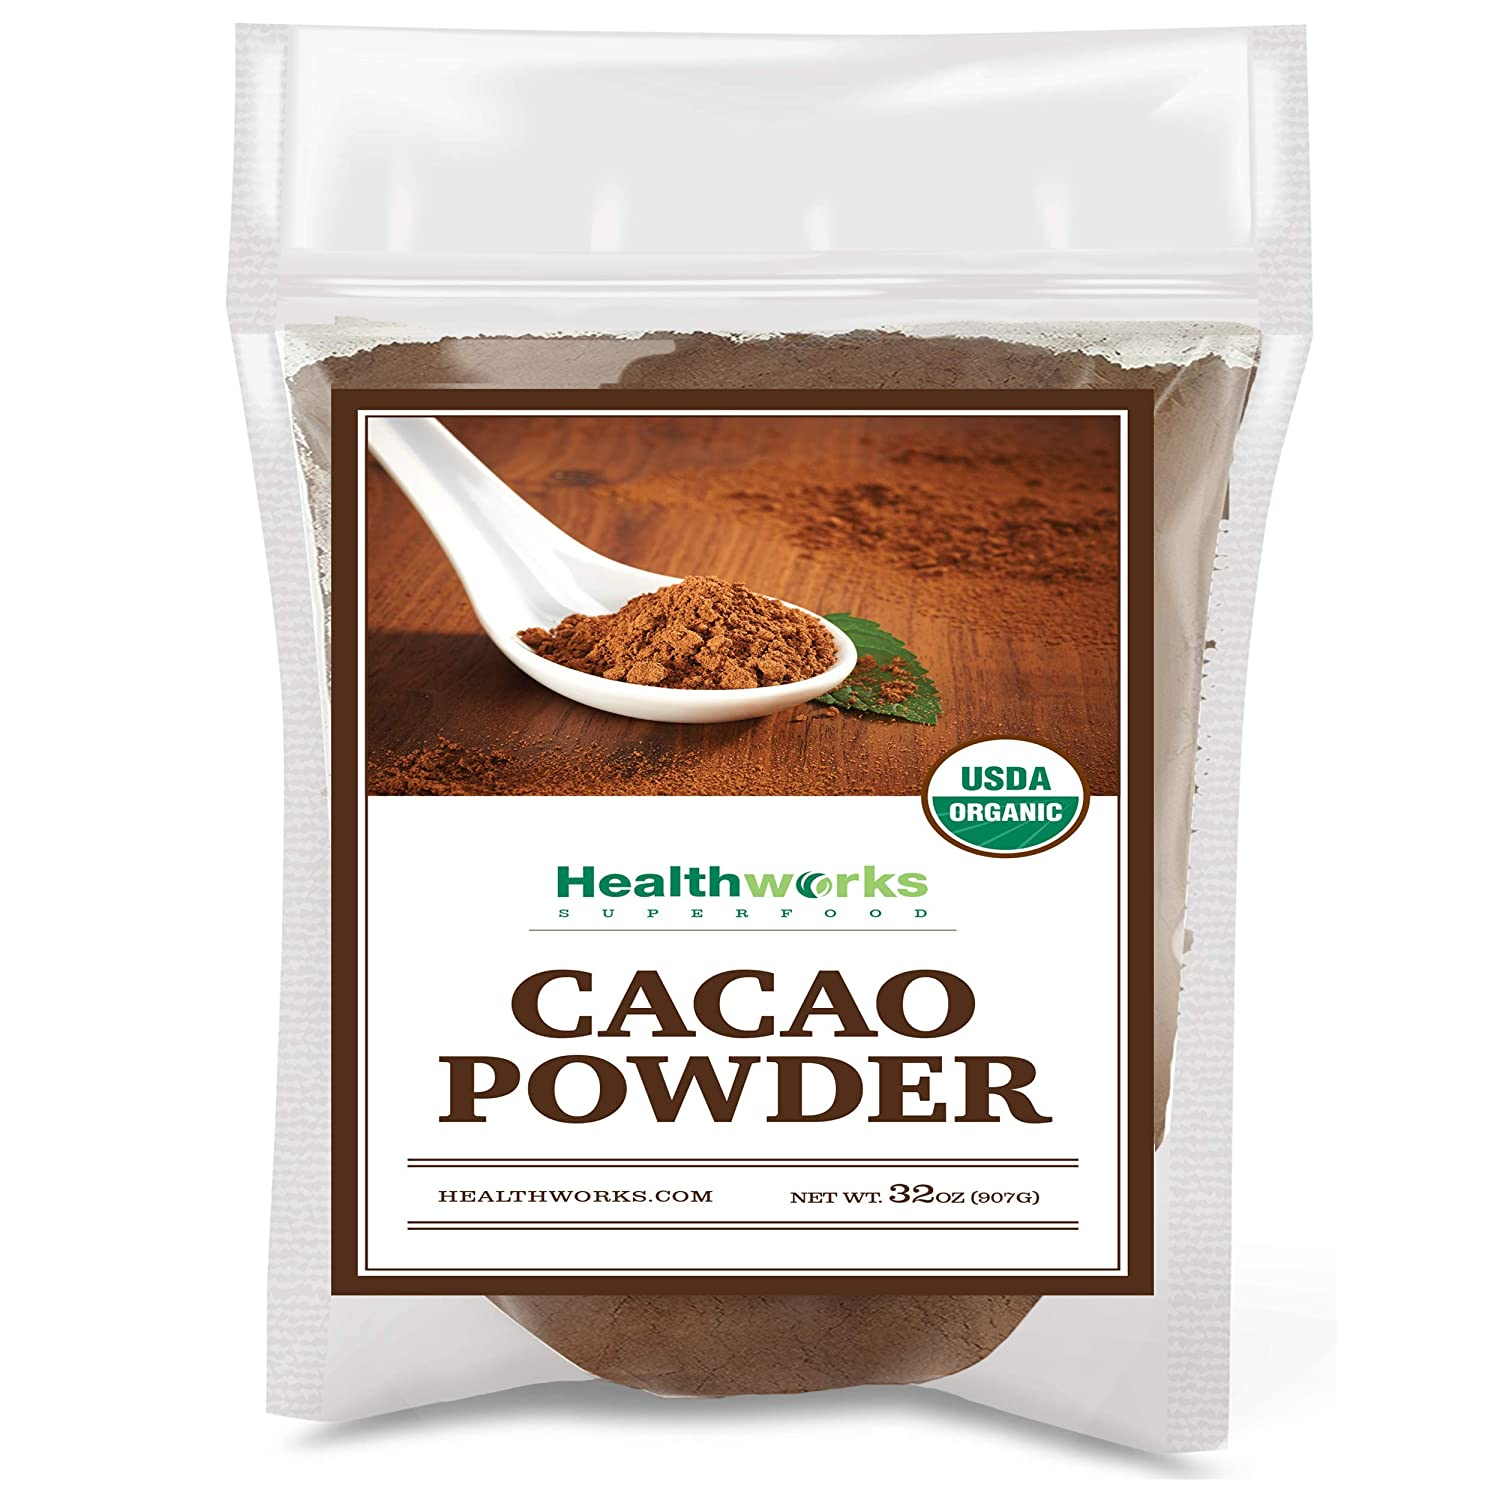 Healthworks Low price Cacao Powder 32 Ounces Chocolat 2 Cocoa 2021 model Pounds